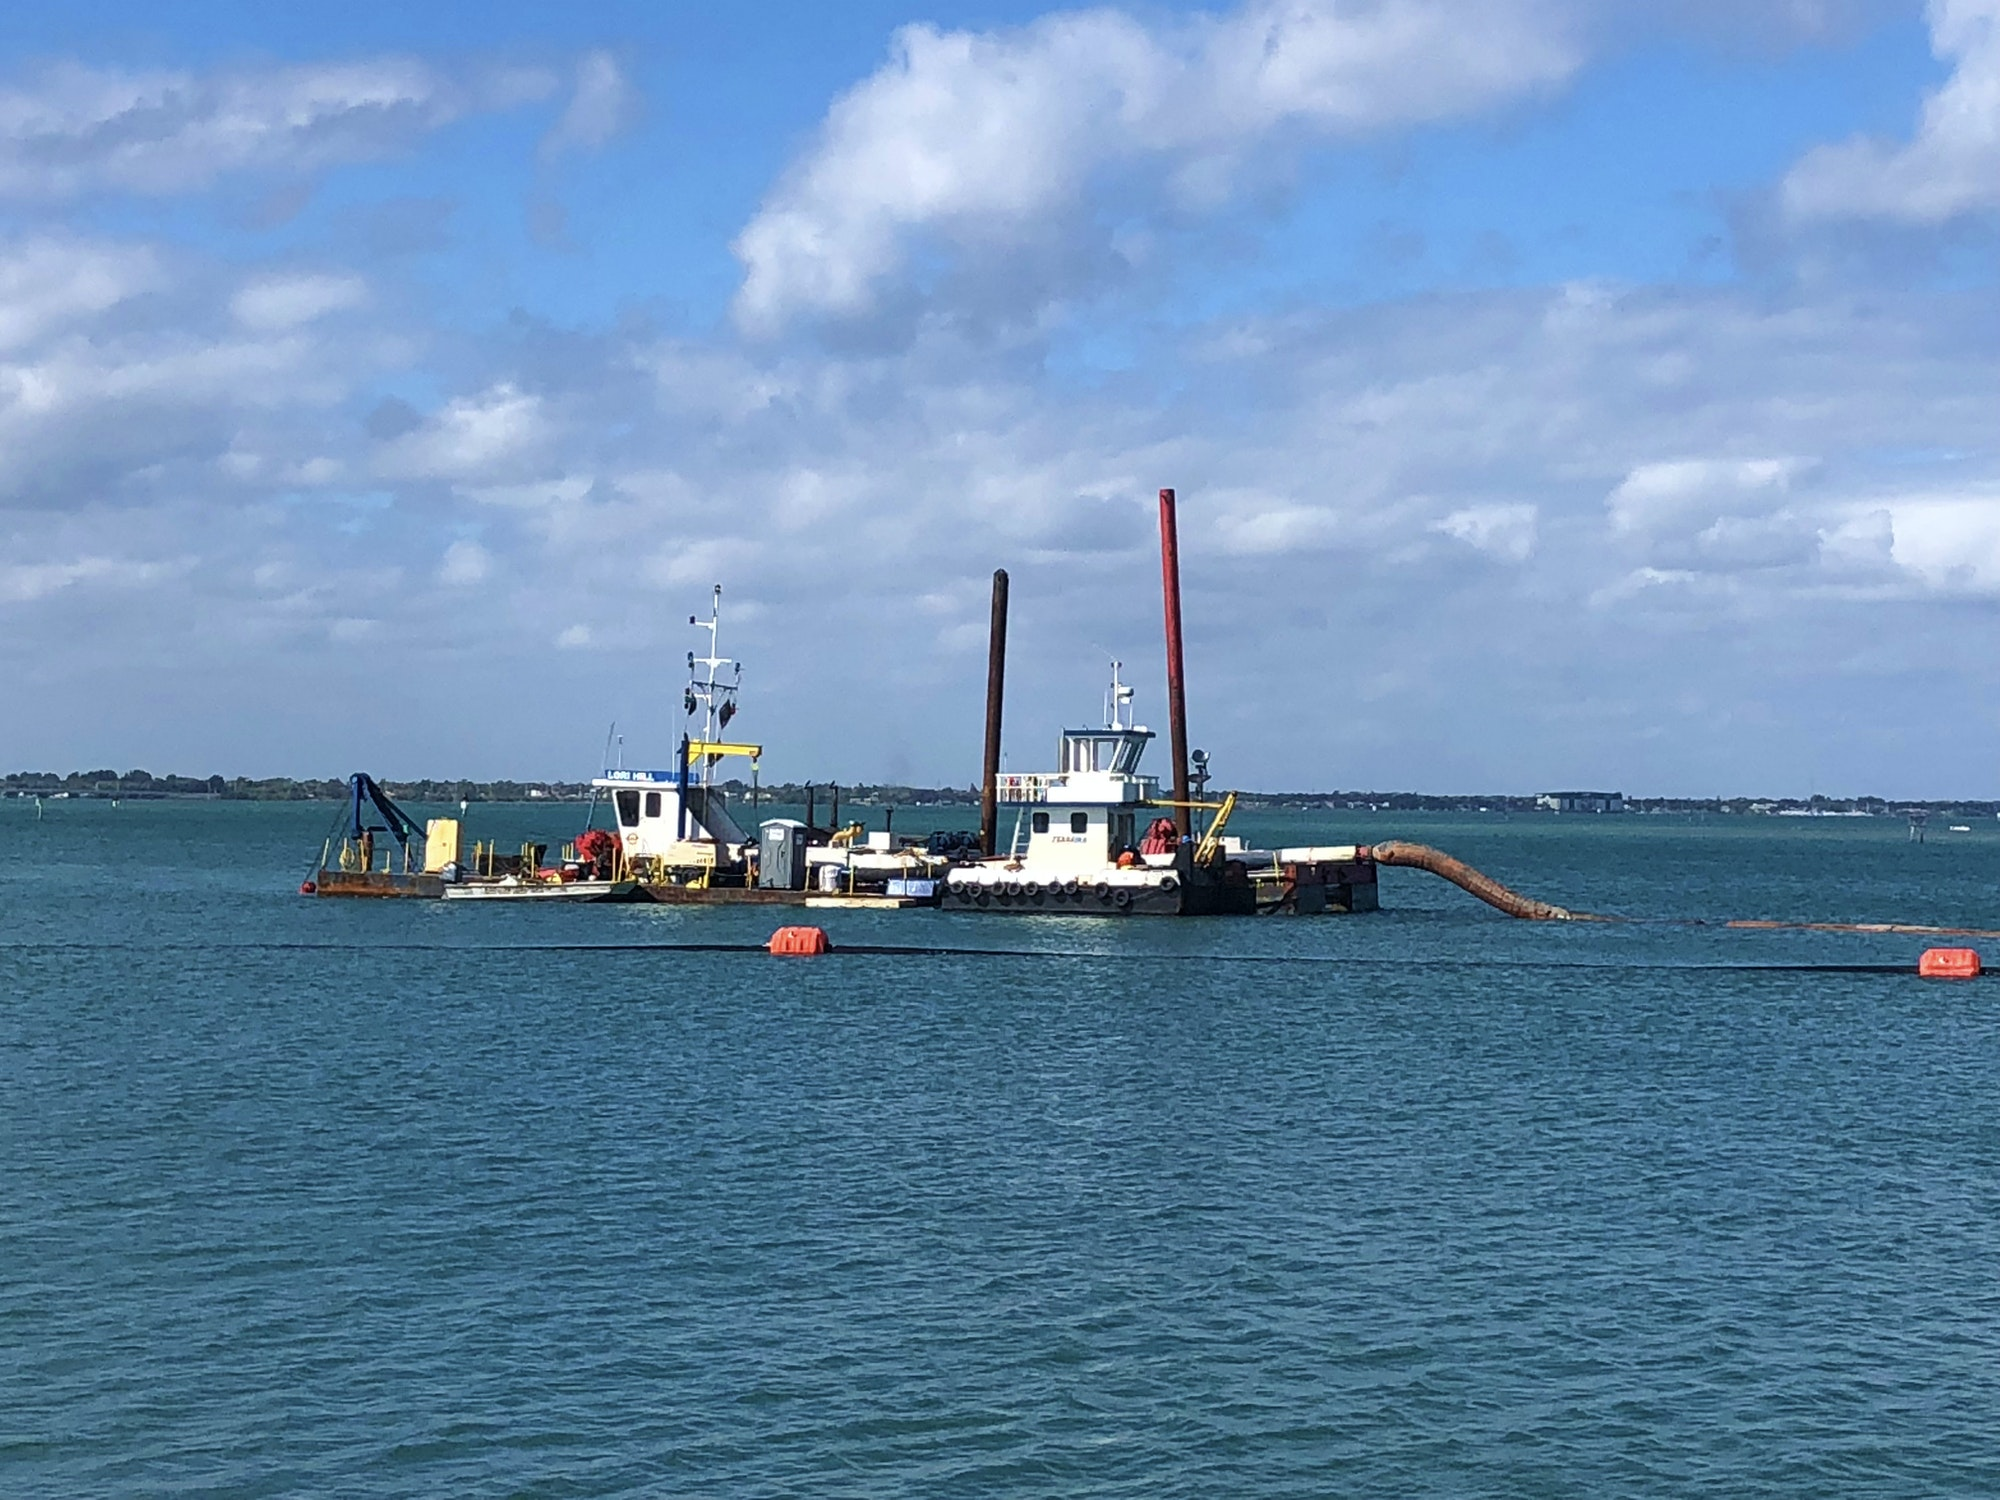 Dredge boat floating on water